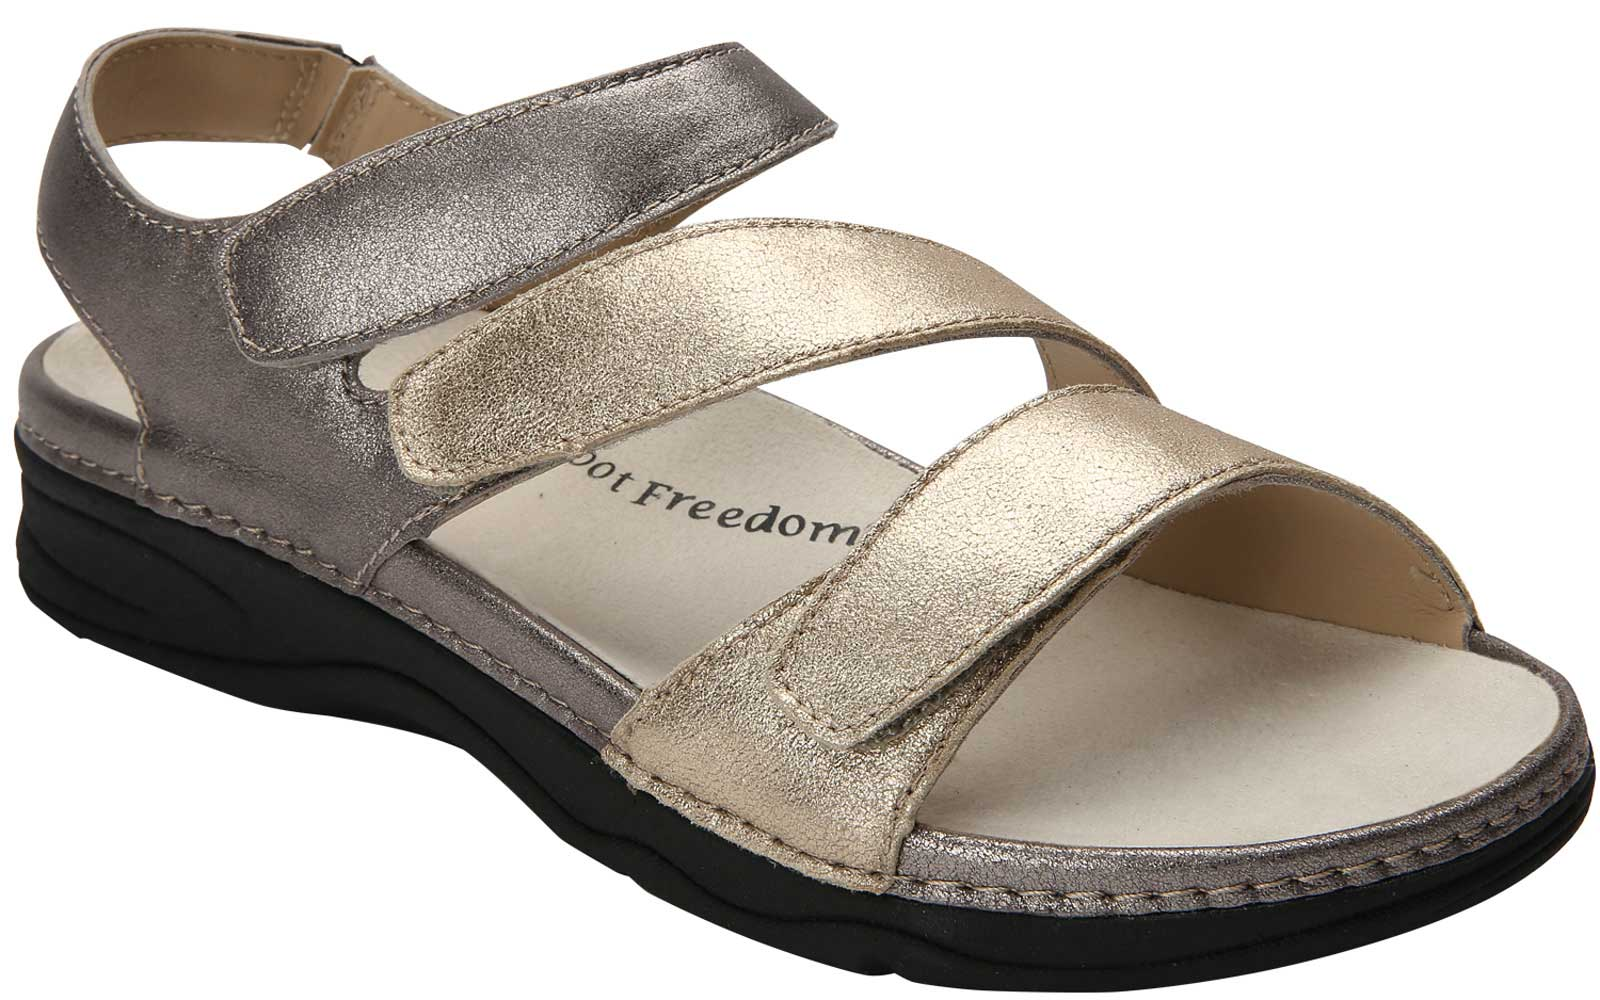 b108717825e6c2 The Drew Shoe - Angela  Our new Angela sandal by Barefoot Freedom offers  the lightweight comfort of a removable ULTRON footbed and the added support  of a ...